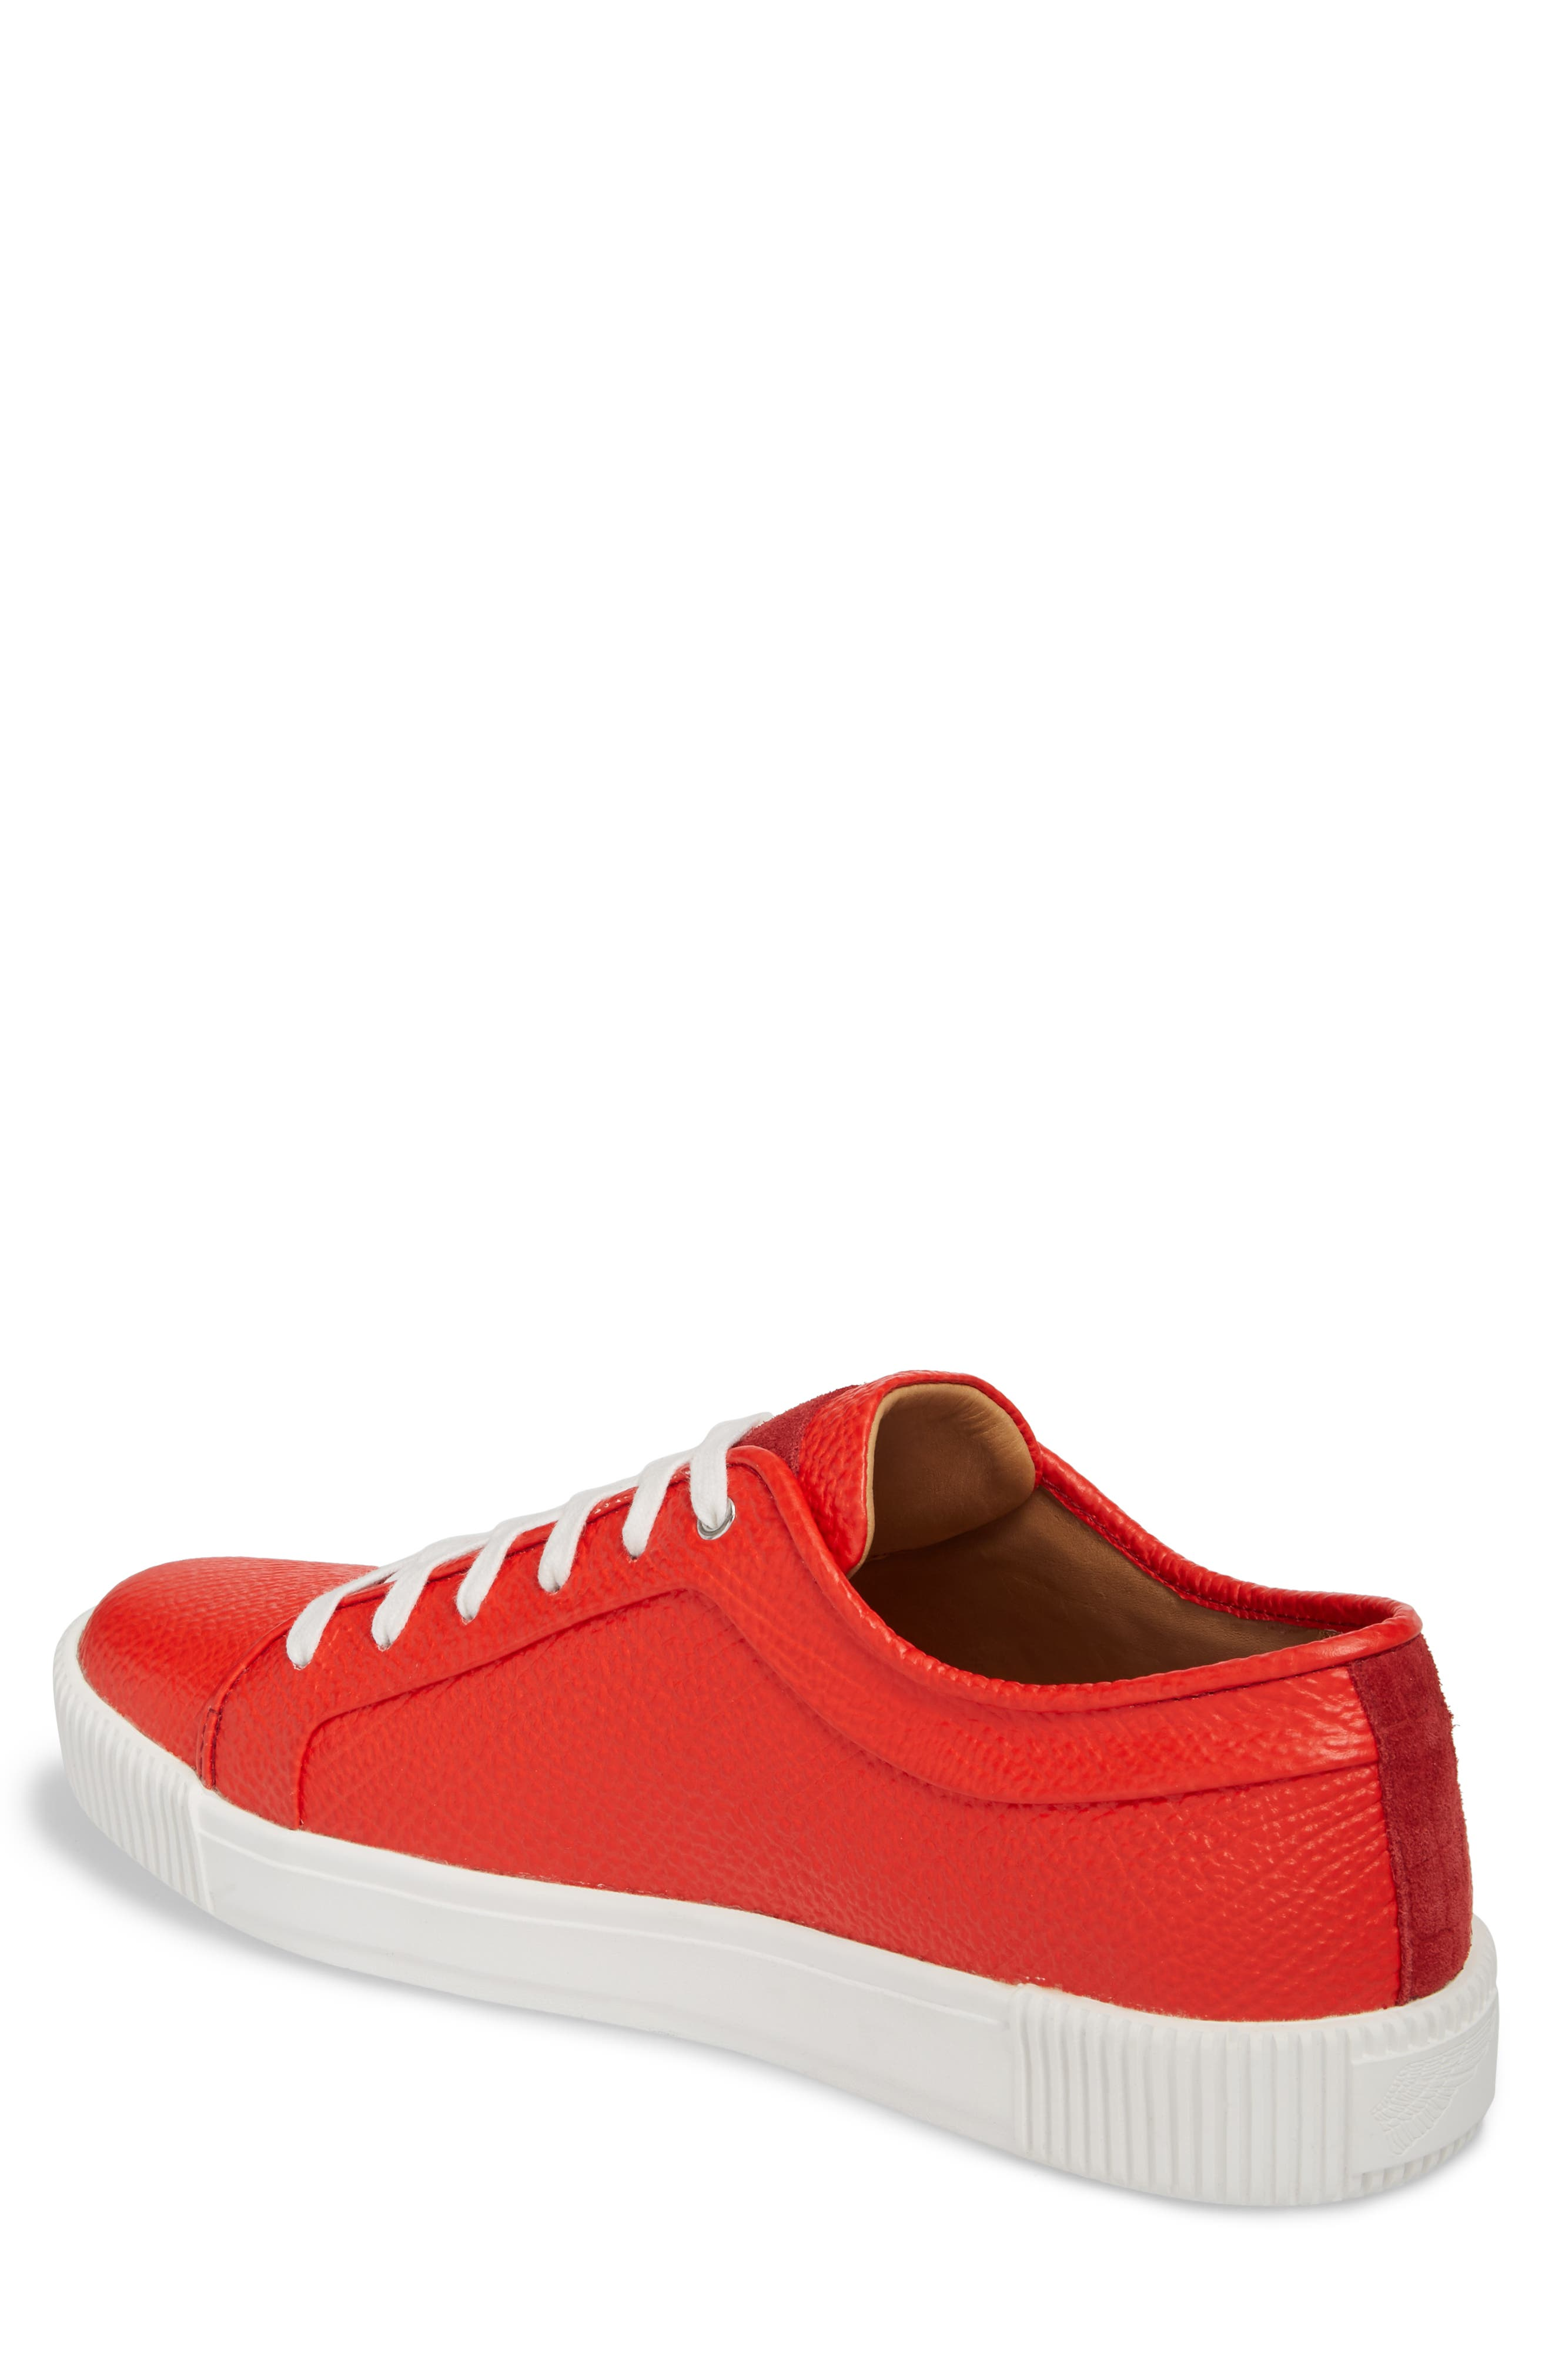 Lyons Low Top Sneaker,                             Alternate thumbnail 2, color,                             Red Leather